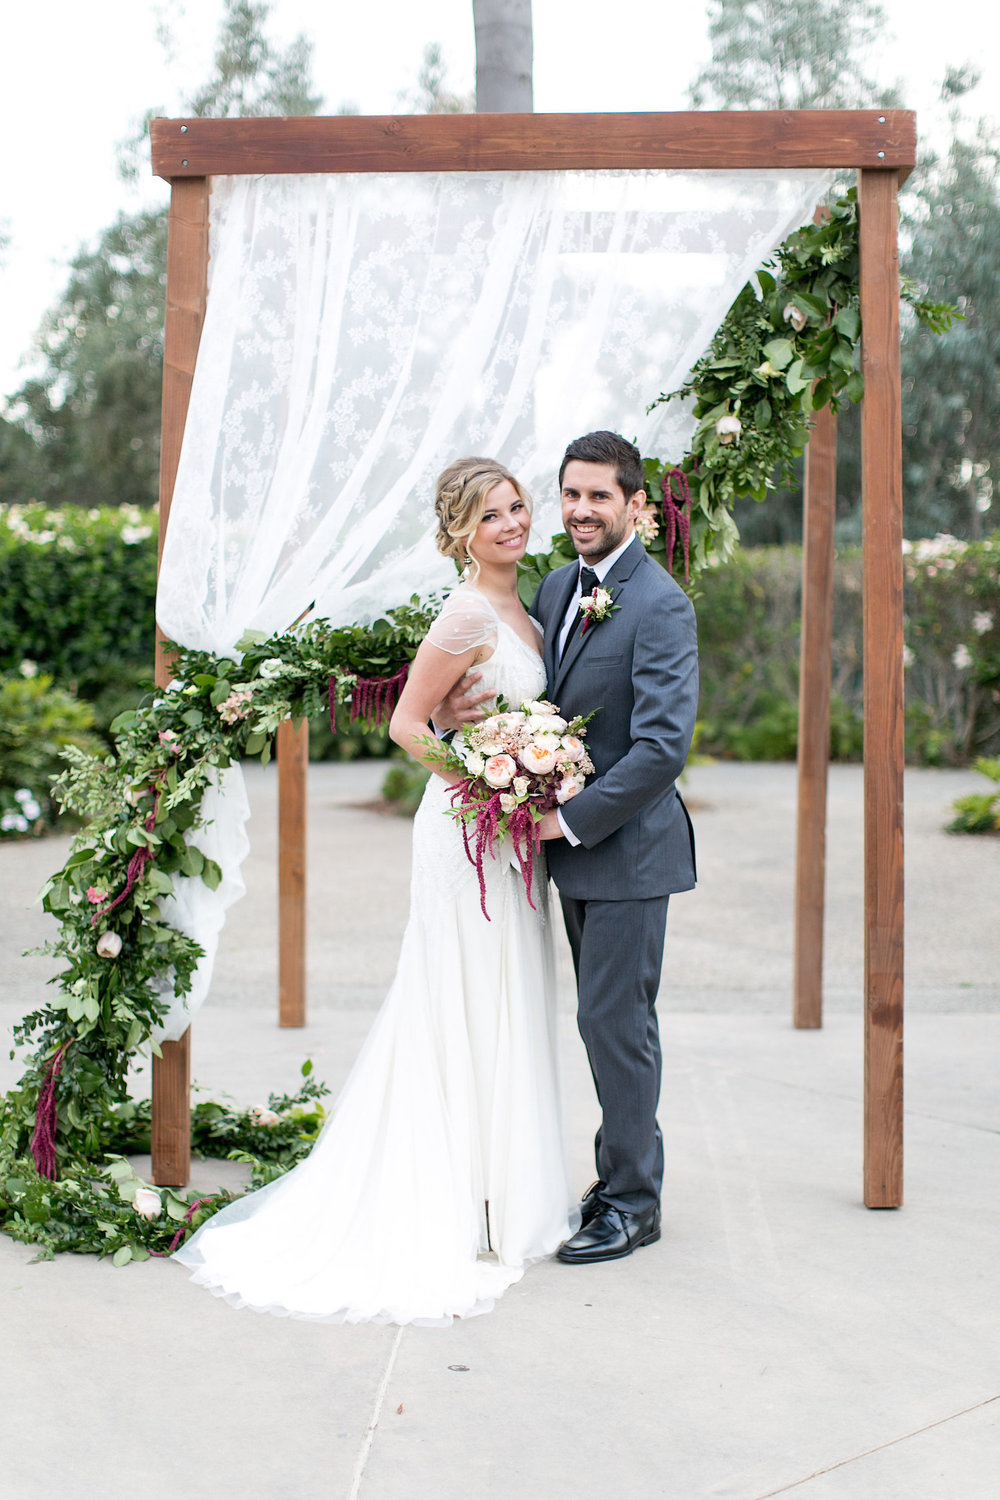 Wedding ceremony garland on chuppah by San Diego florist, Compass Floral.